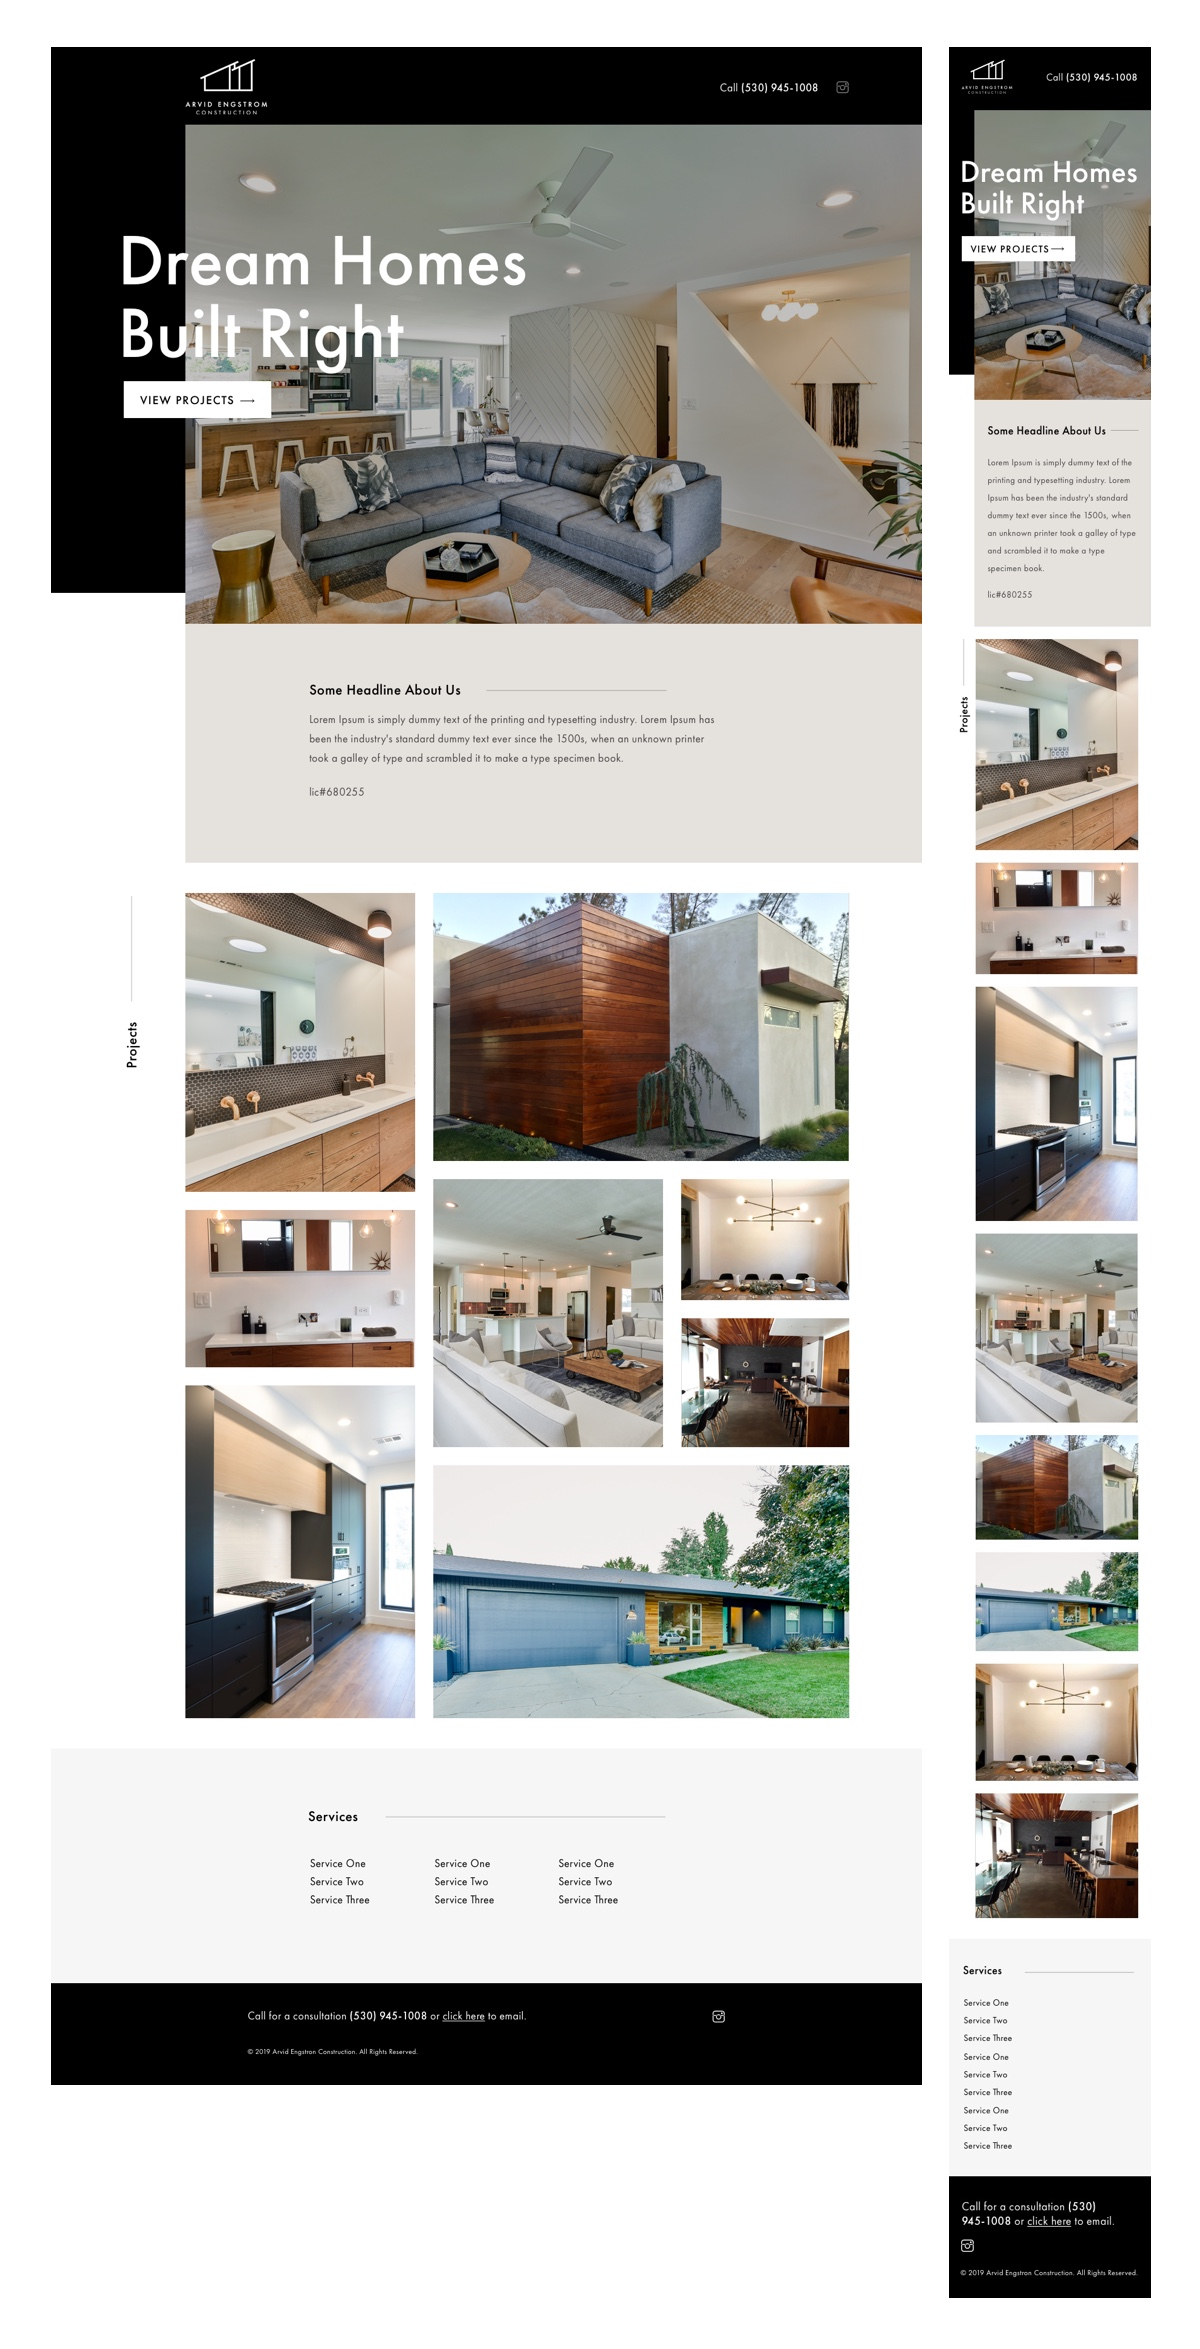 Arvid Engstrom Construction Desktop and Mobile